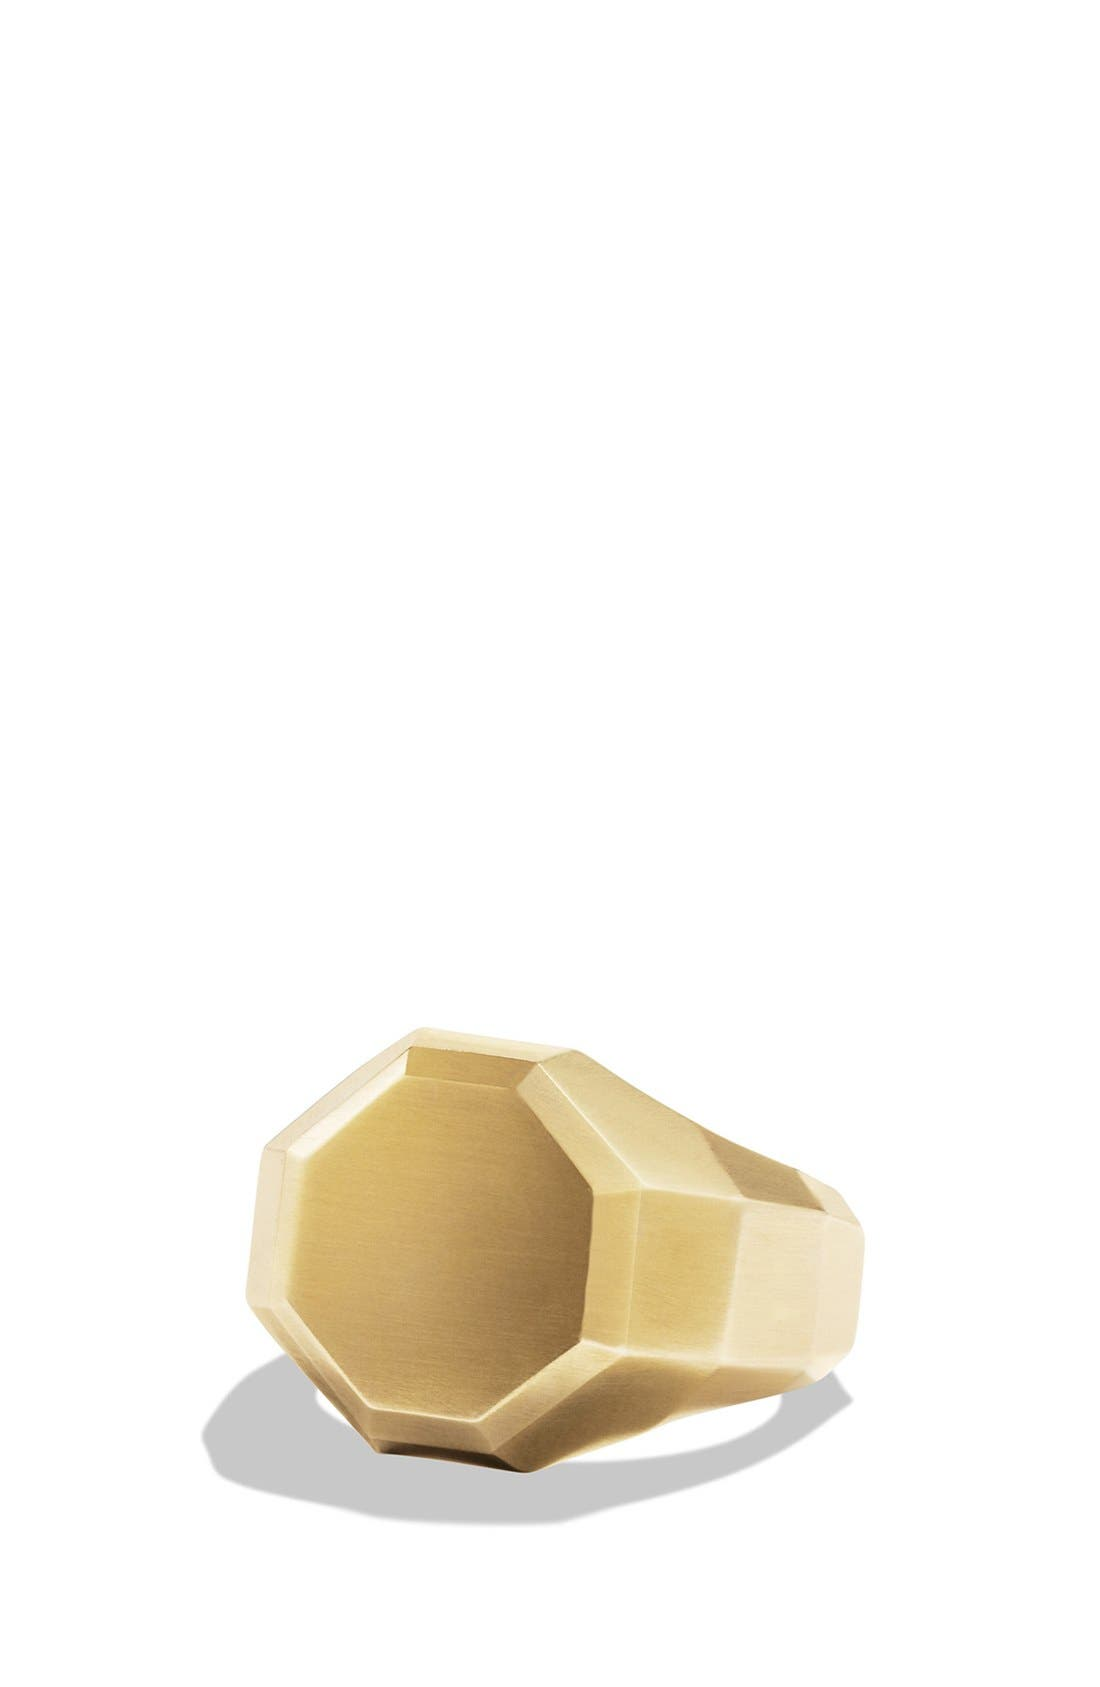 'Faceted' Signet Ring with 18k Gold,                         Main,                         color, Two Tone